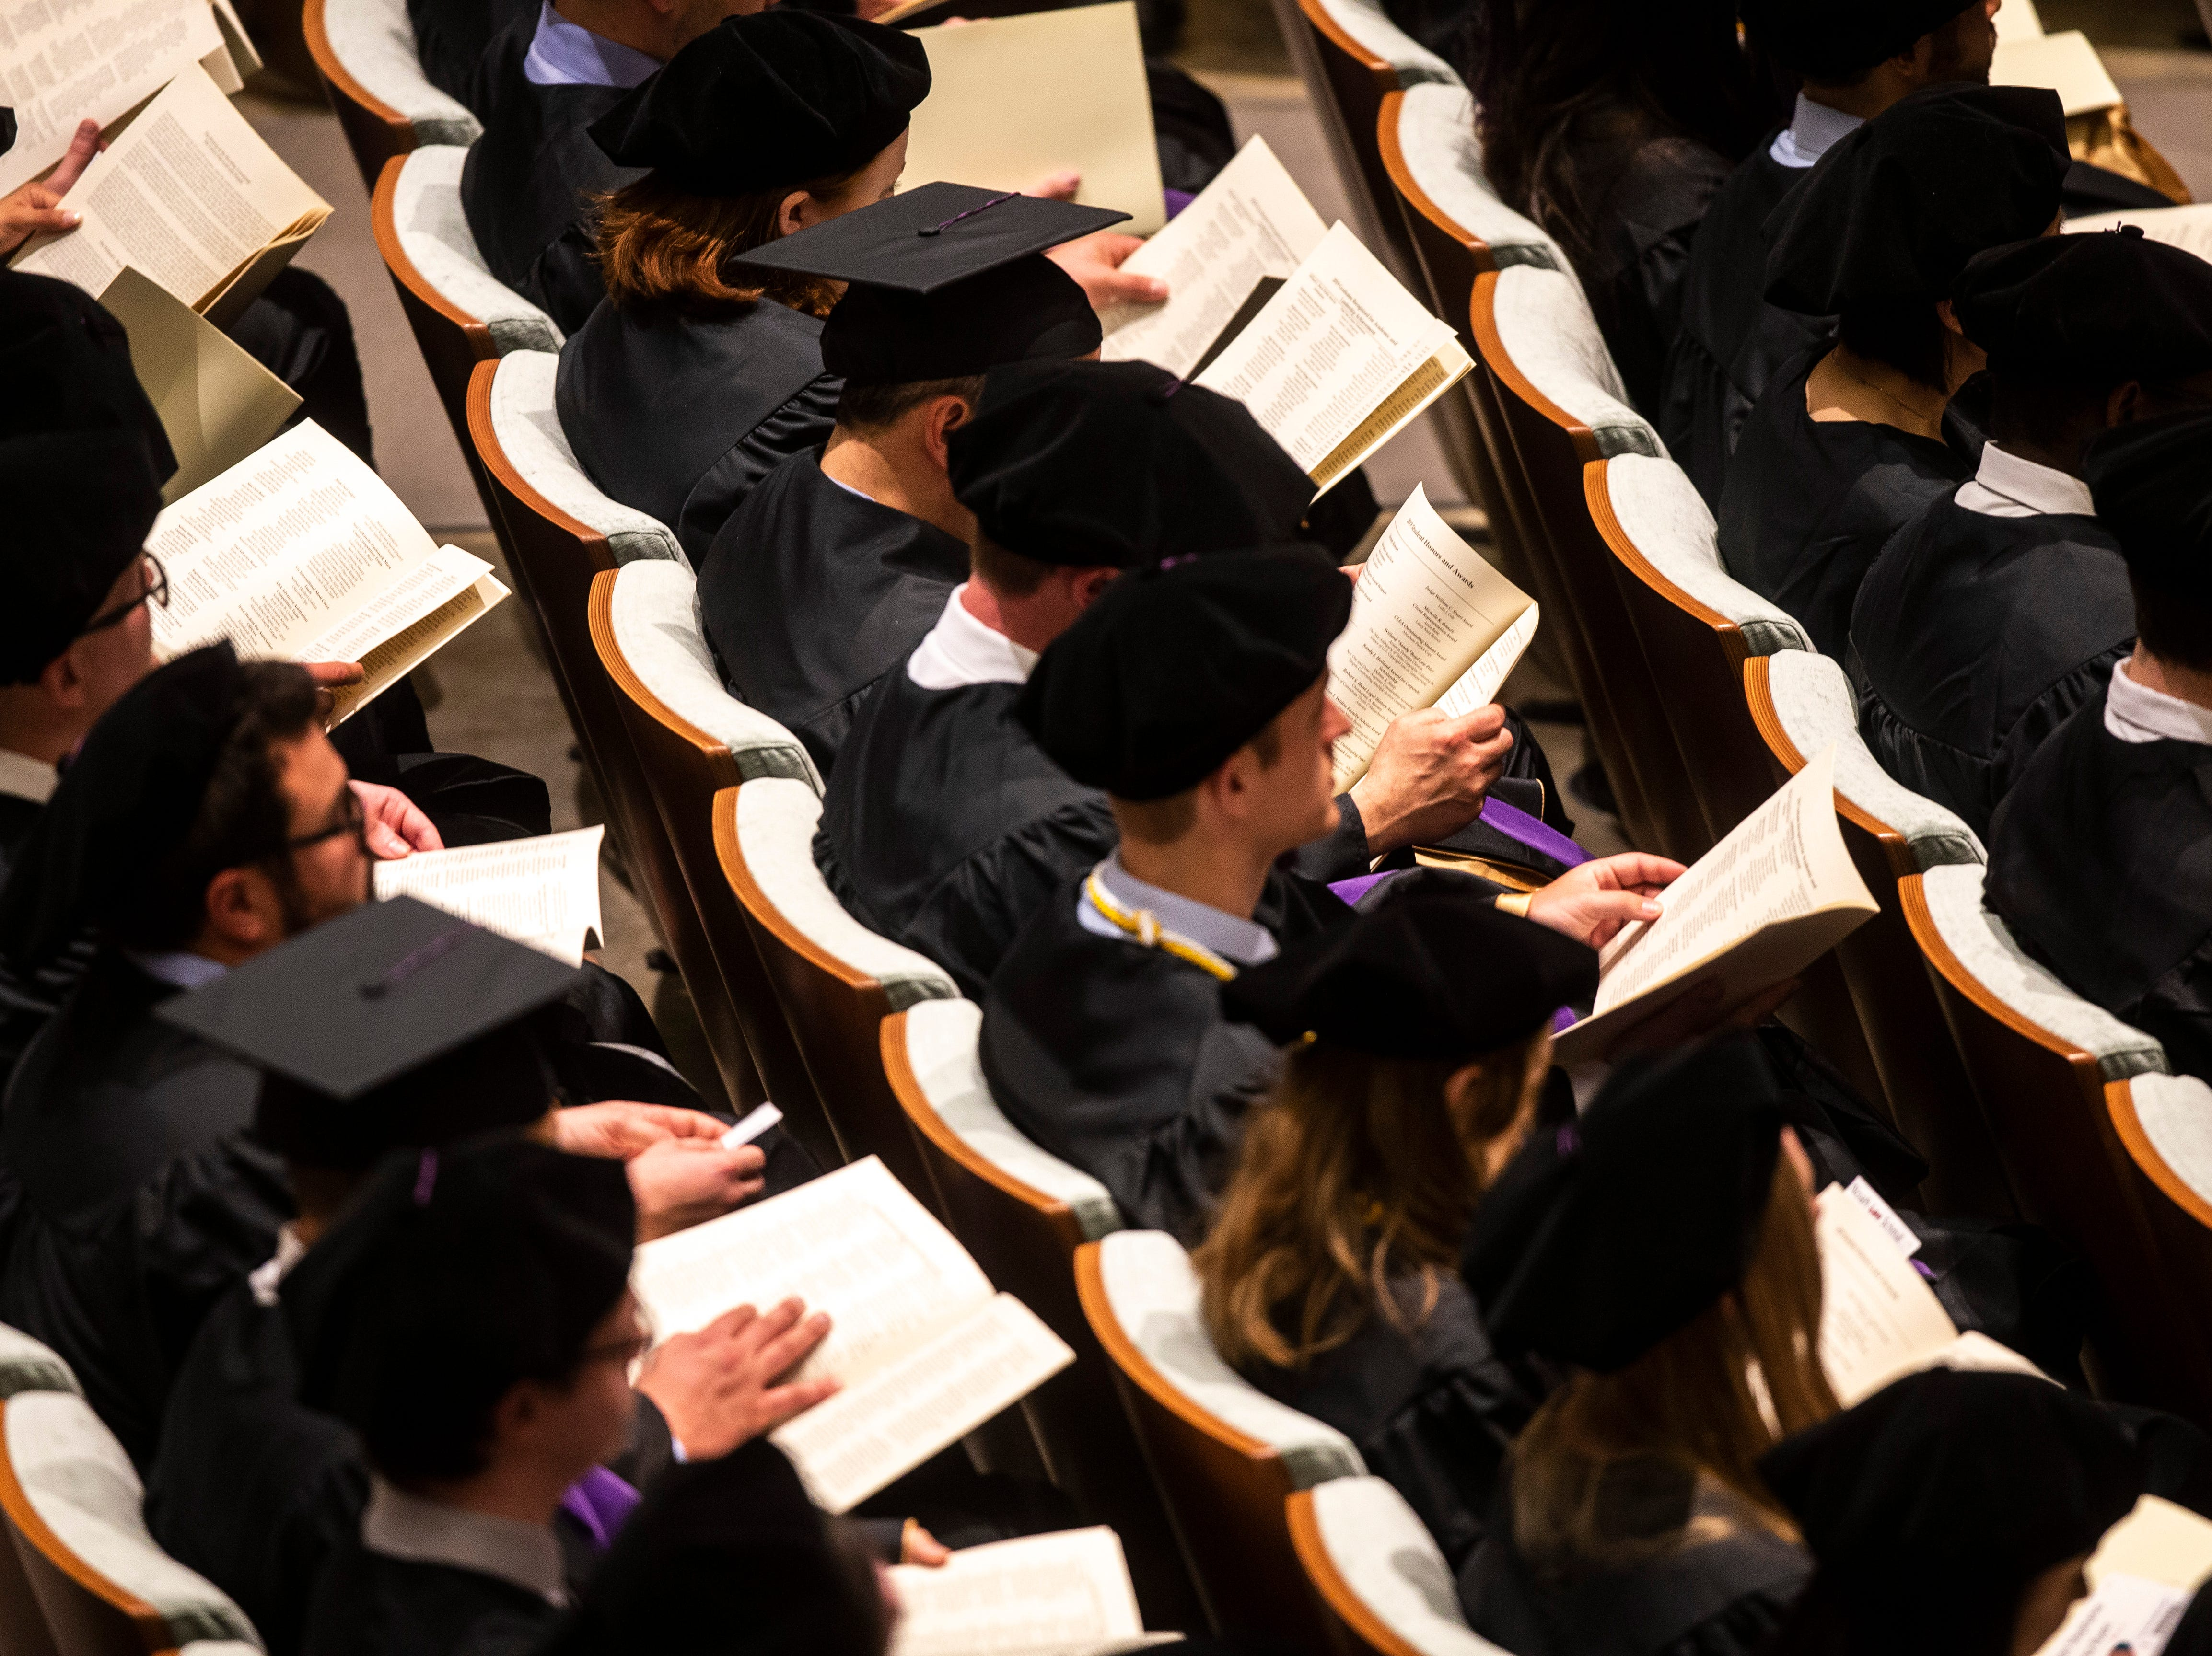 Graduates look through a program during the College of Law commencement ceremony, Friday, May 10, 2019, at Hancher Auditorium on the University of Iowa campus in Iowa City, Iowa.